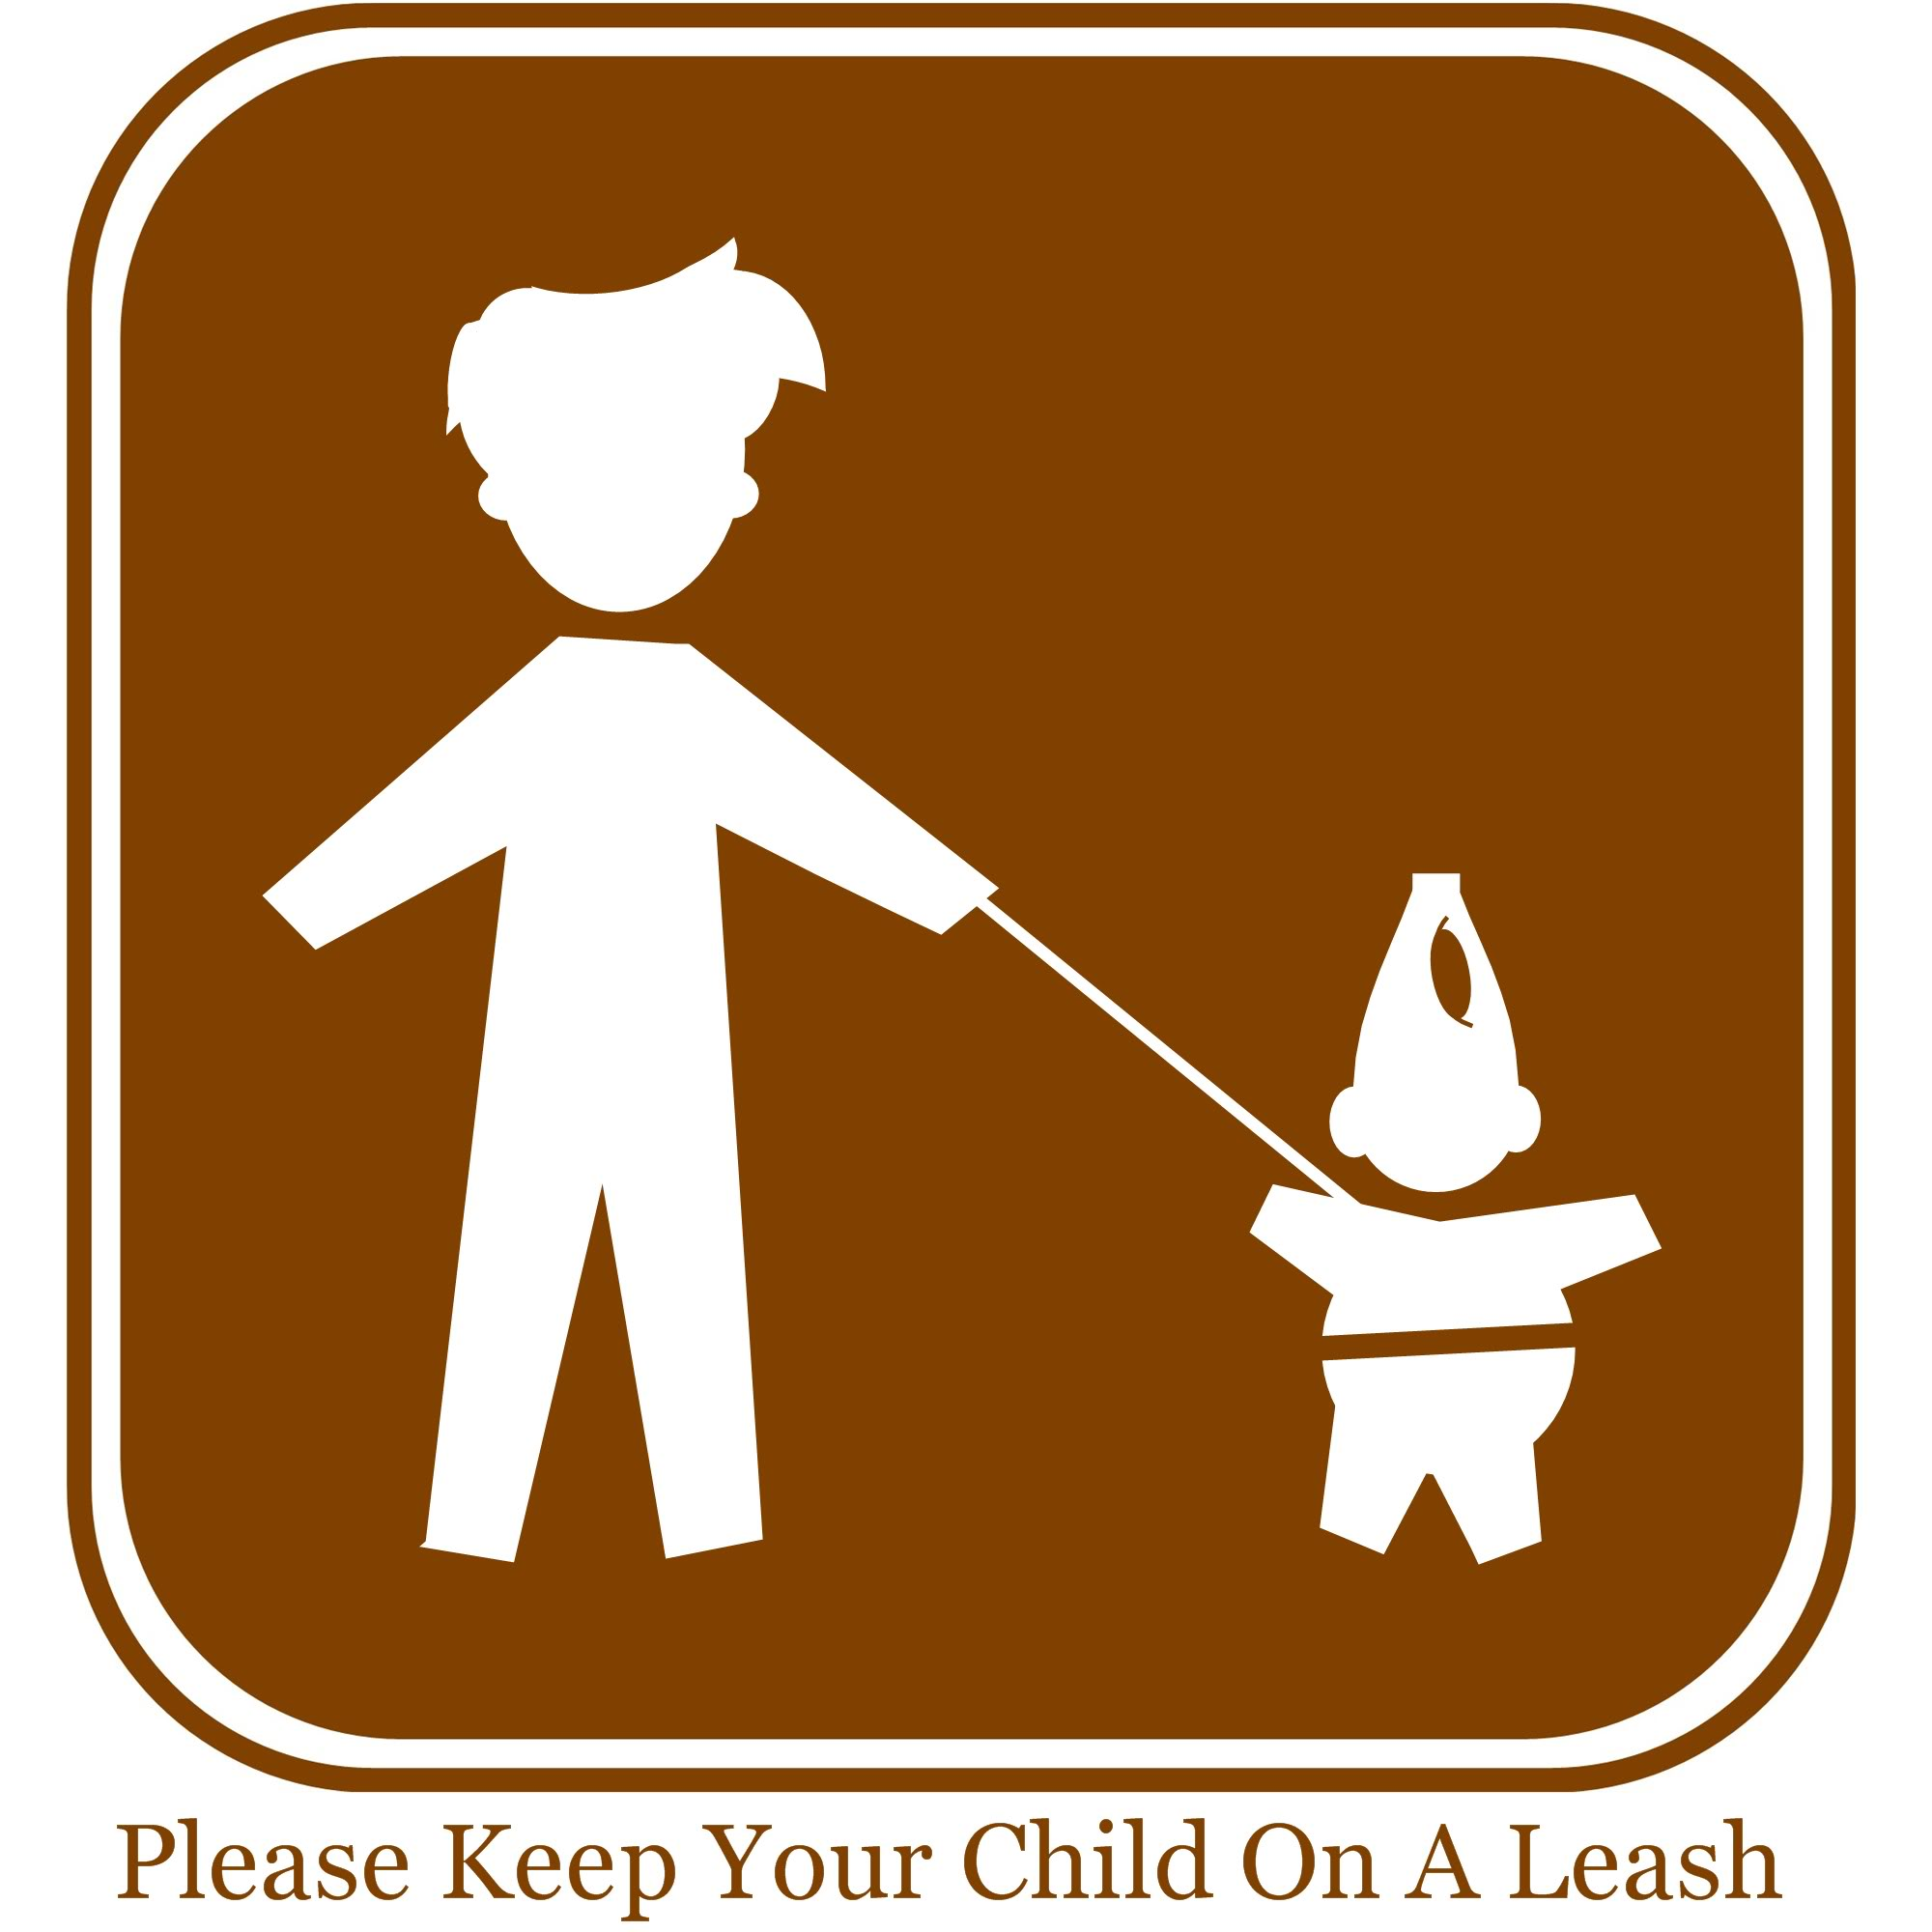 Halo clipart well behaved child Zone Clipart Cliparts Behaved Cliparts